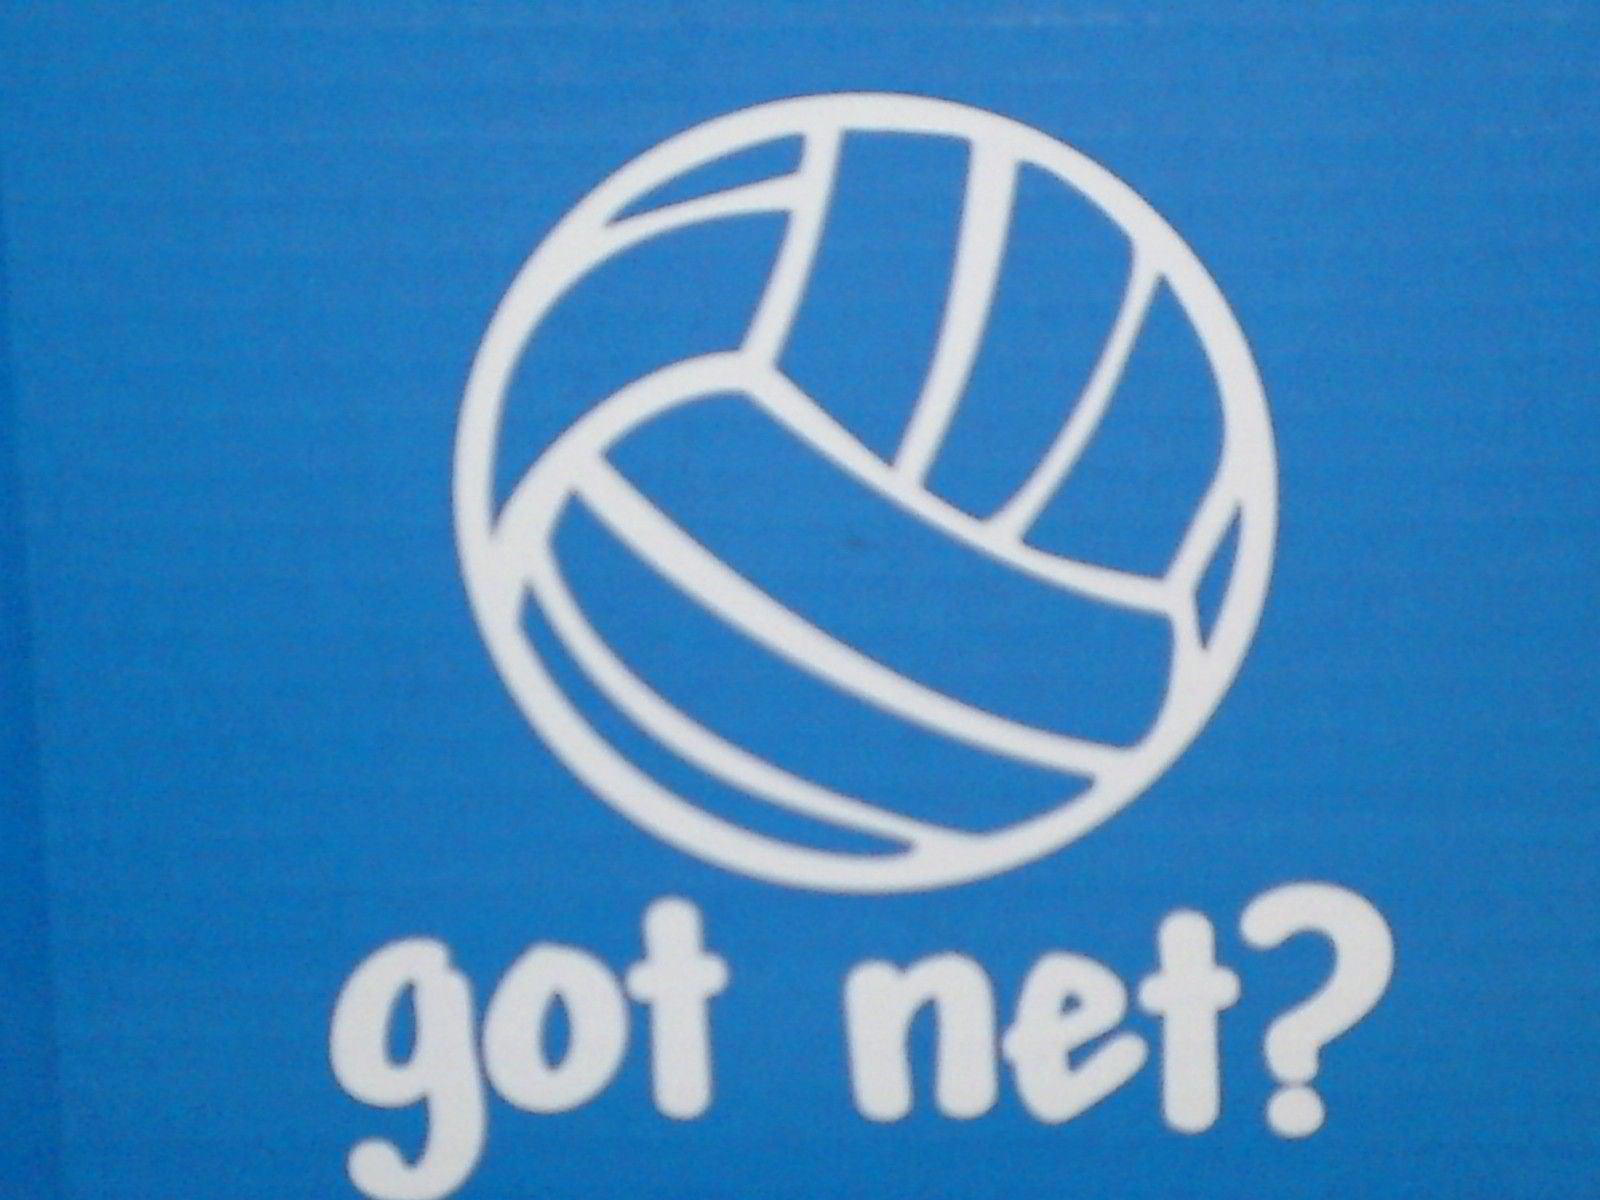 Got Net Volleyball Car Decal Visit My Store For More Volleyball Gifts Www Thesportsjourney Com Volleyball Gifts Team Gifts Volleyball Store [ 1200 x 1600 Pixel ]